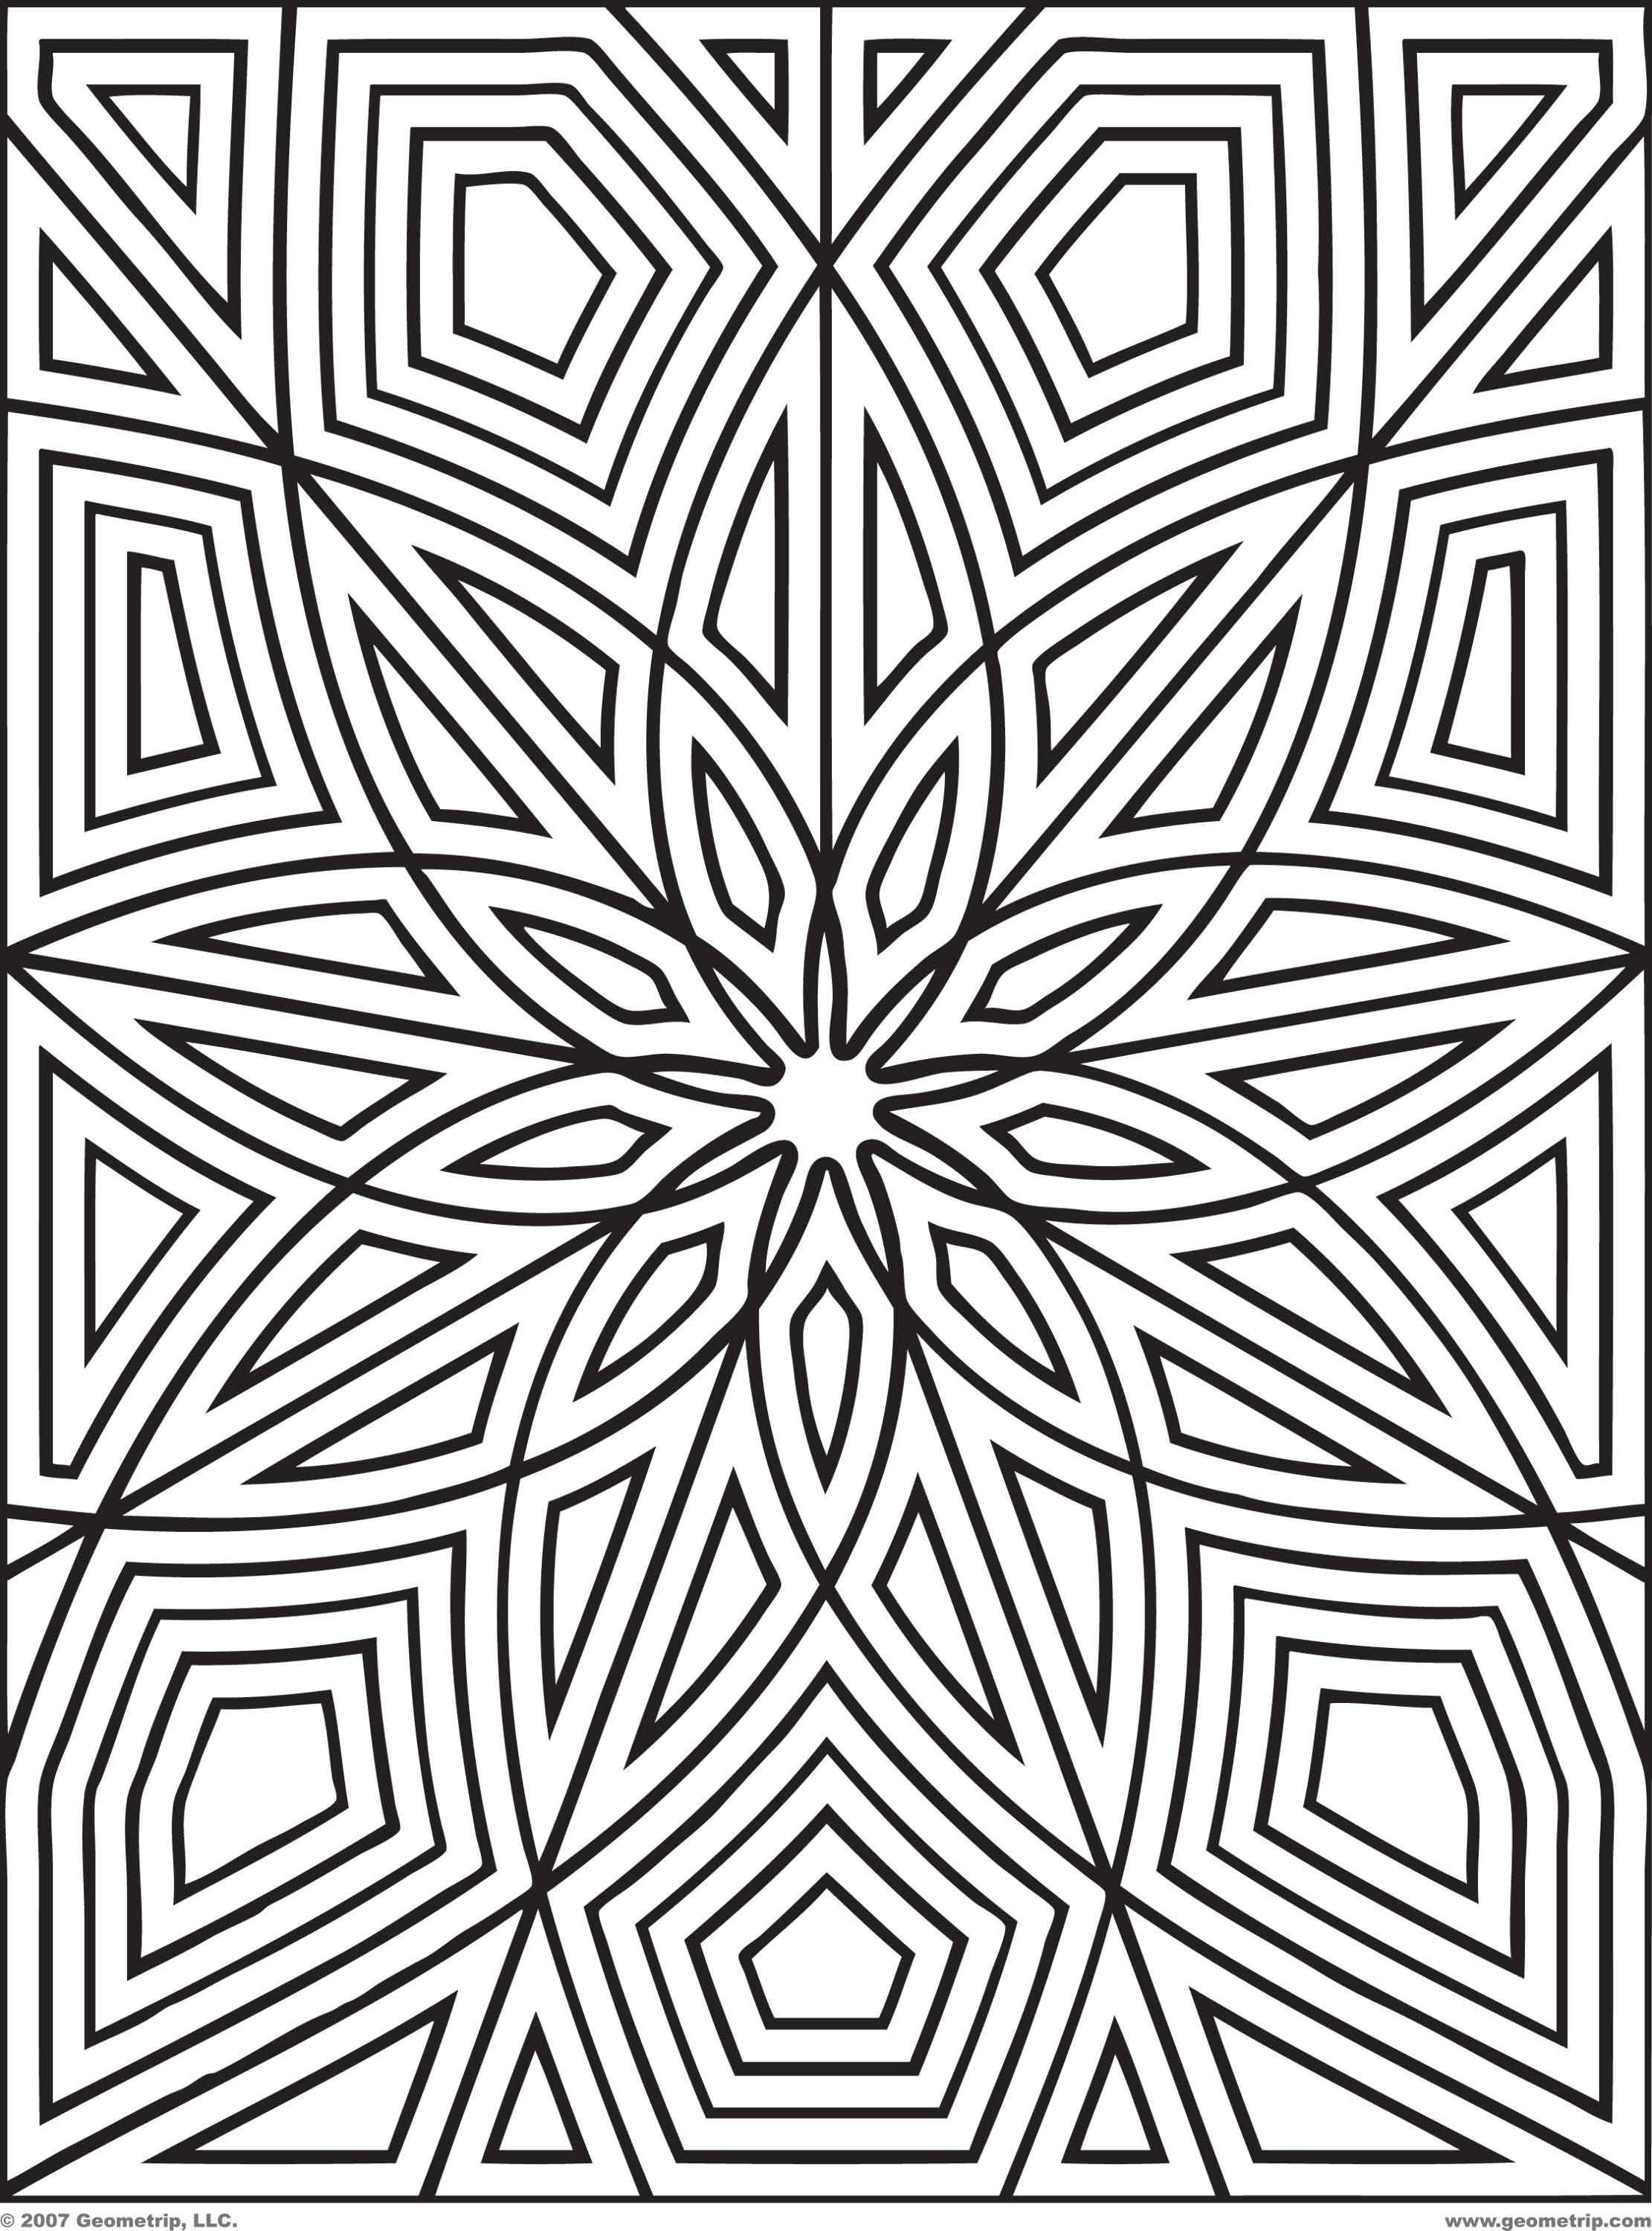 coloring pages designs Difficult Geometric Design Coloring Pages | Rectangles: Page 2 of  coloring pages designs